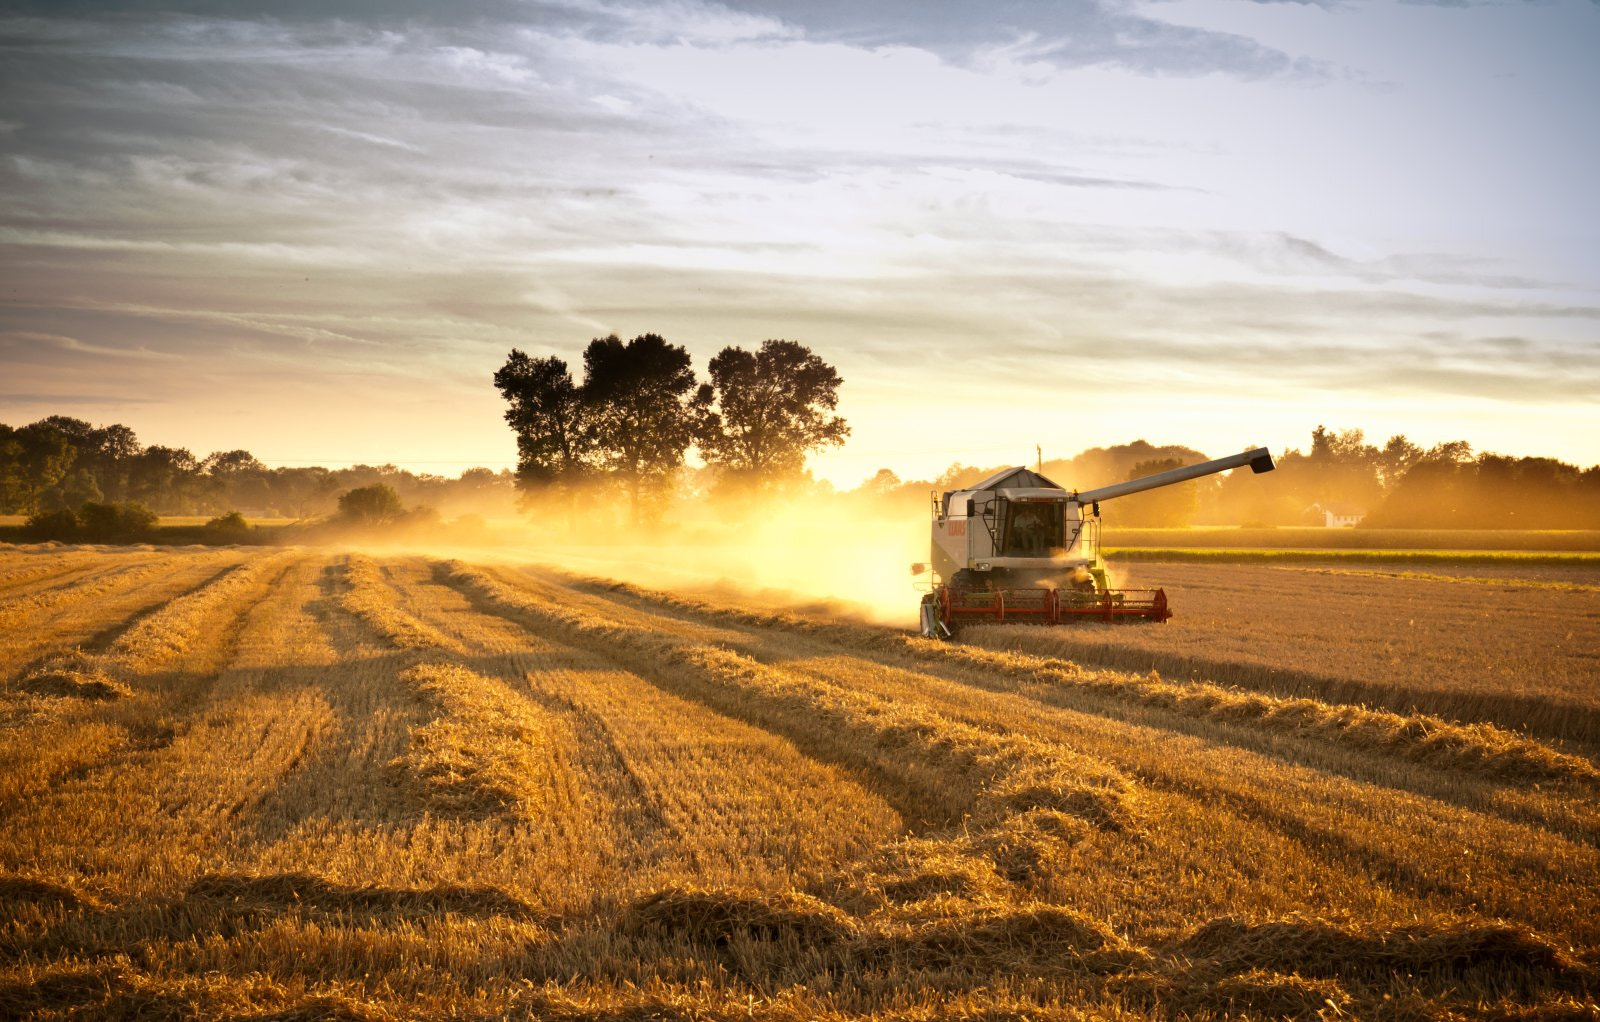 Photograph Harvest time by Hans Weichselbaumer on 500px